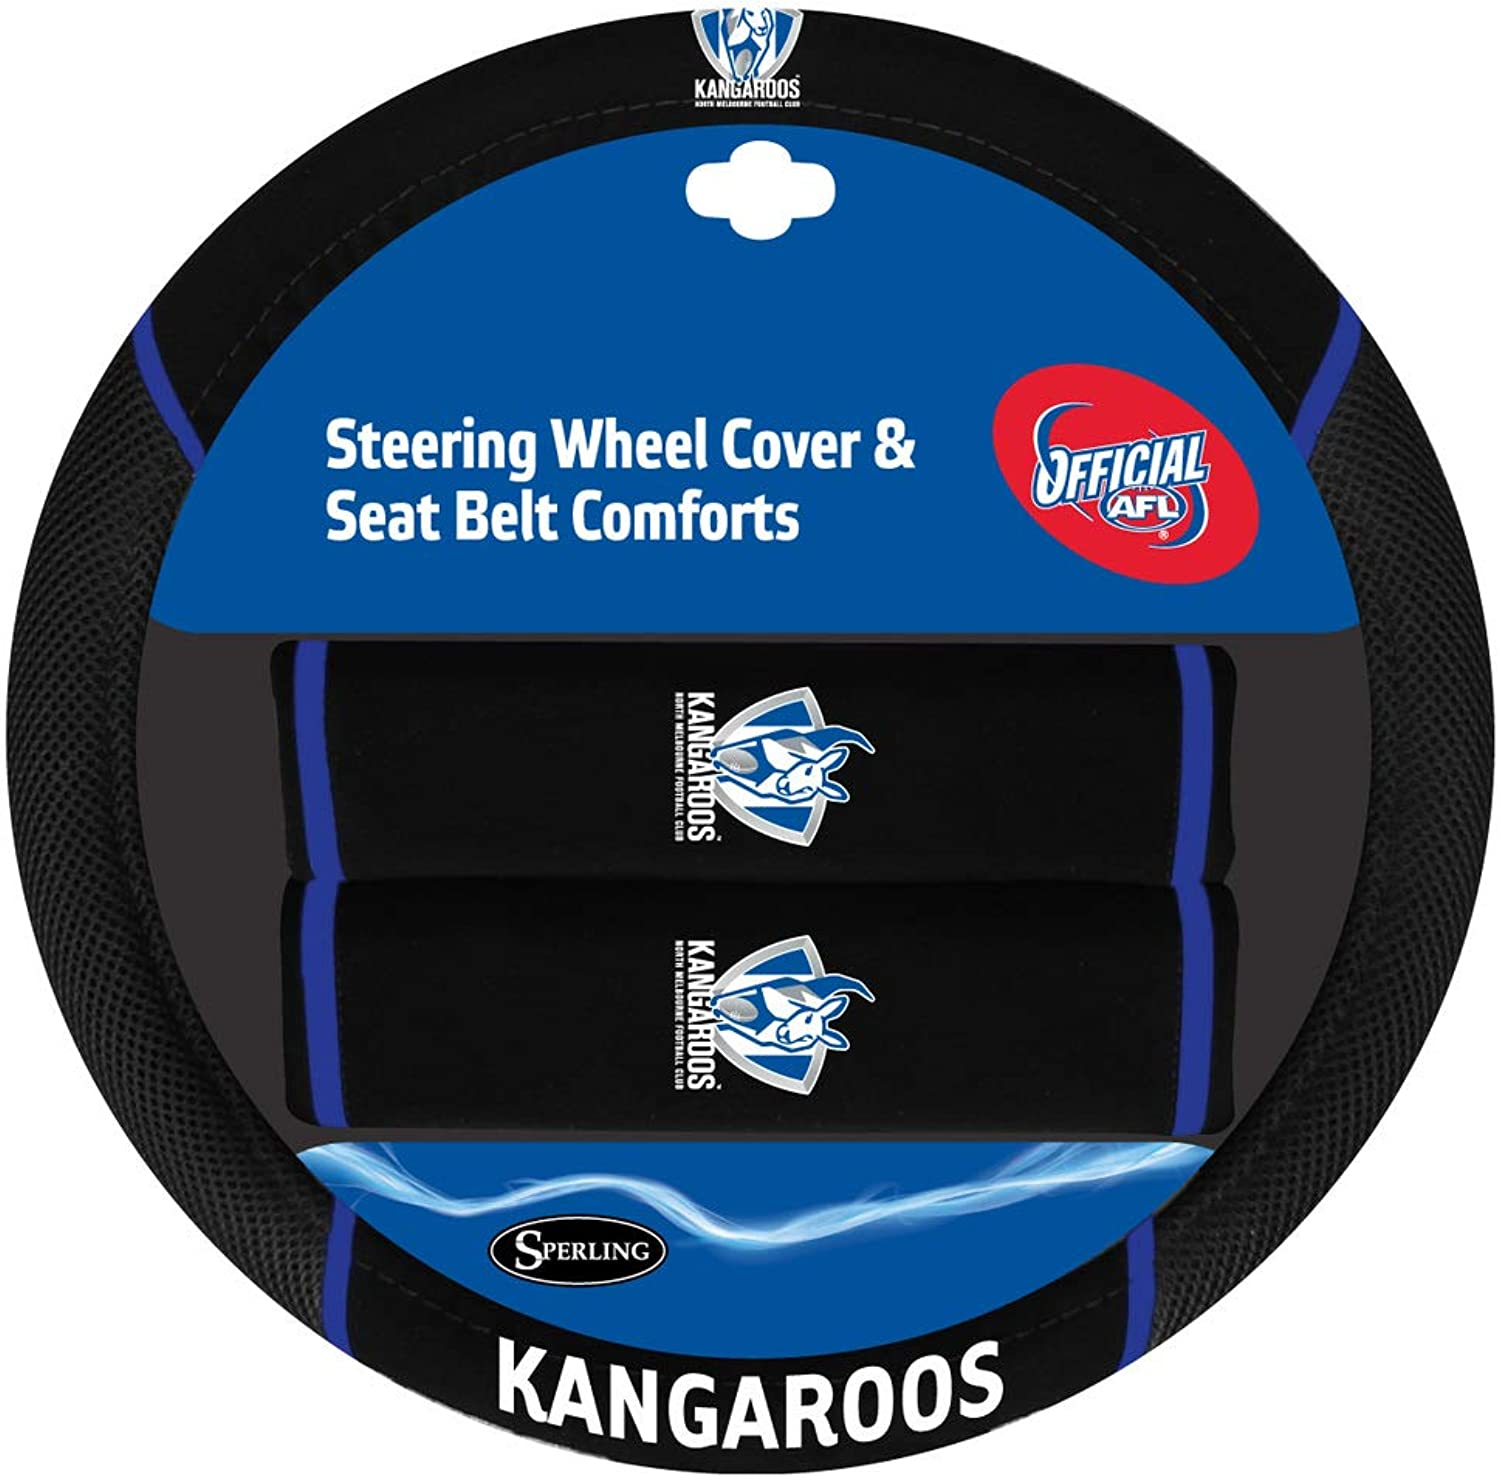 North Melbourne Kangaroos Steering Wheel Cover & Seat Belt Comforts Set